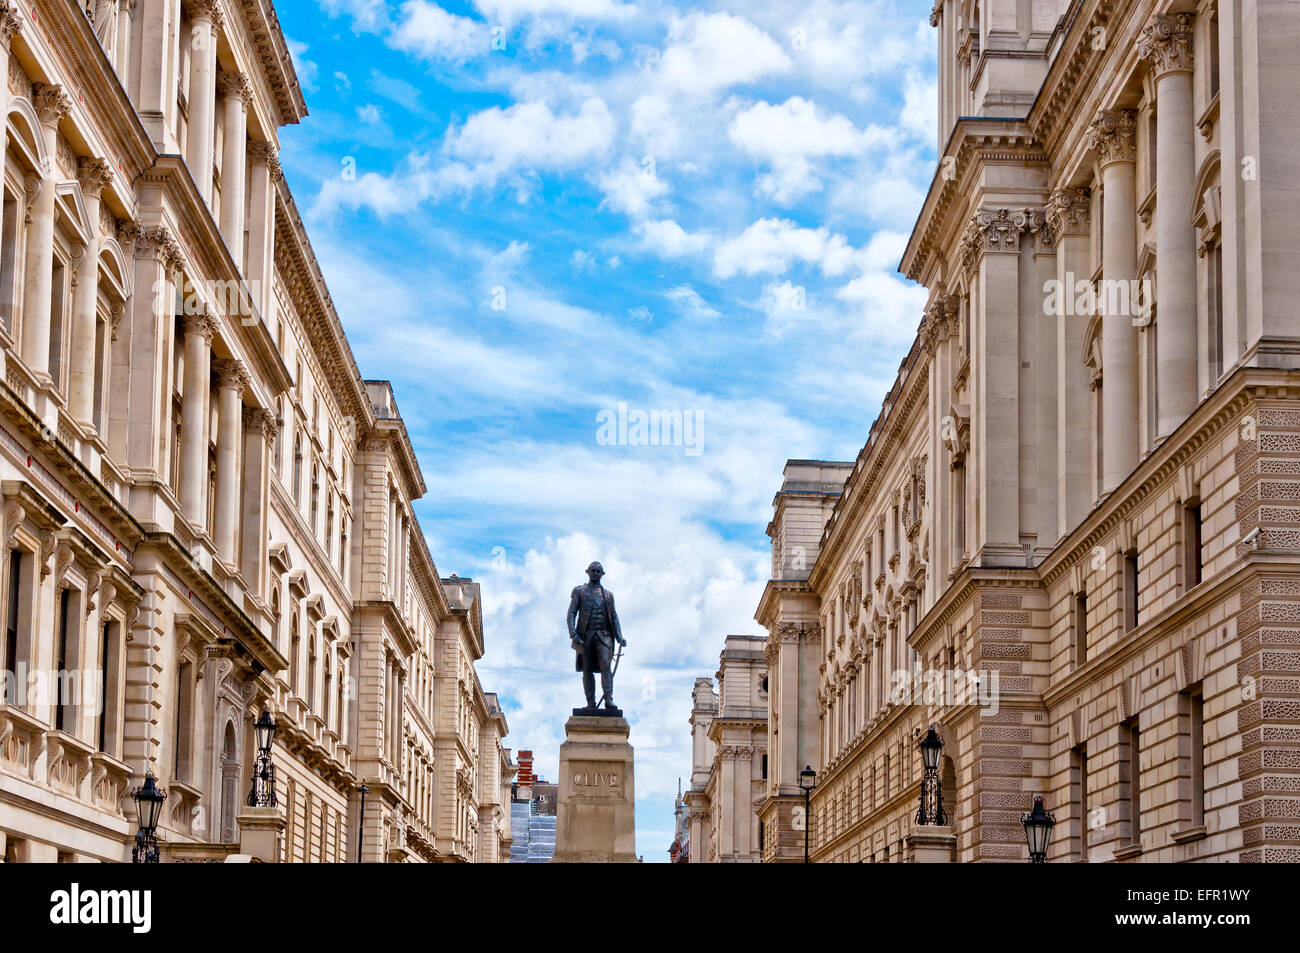 Lord Clive monument in King Charles Street, outside the Foreign Office in Westminster, London, UK - Stock Image